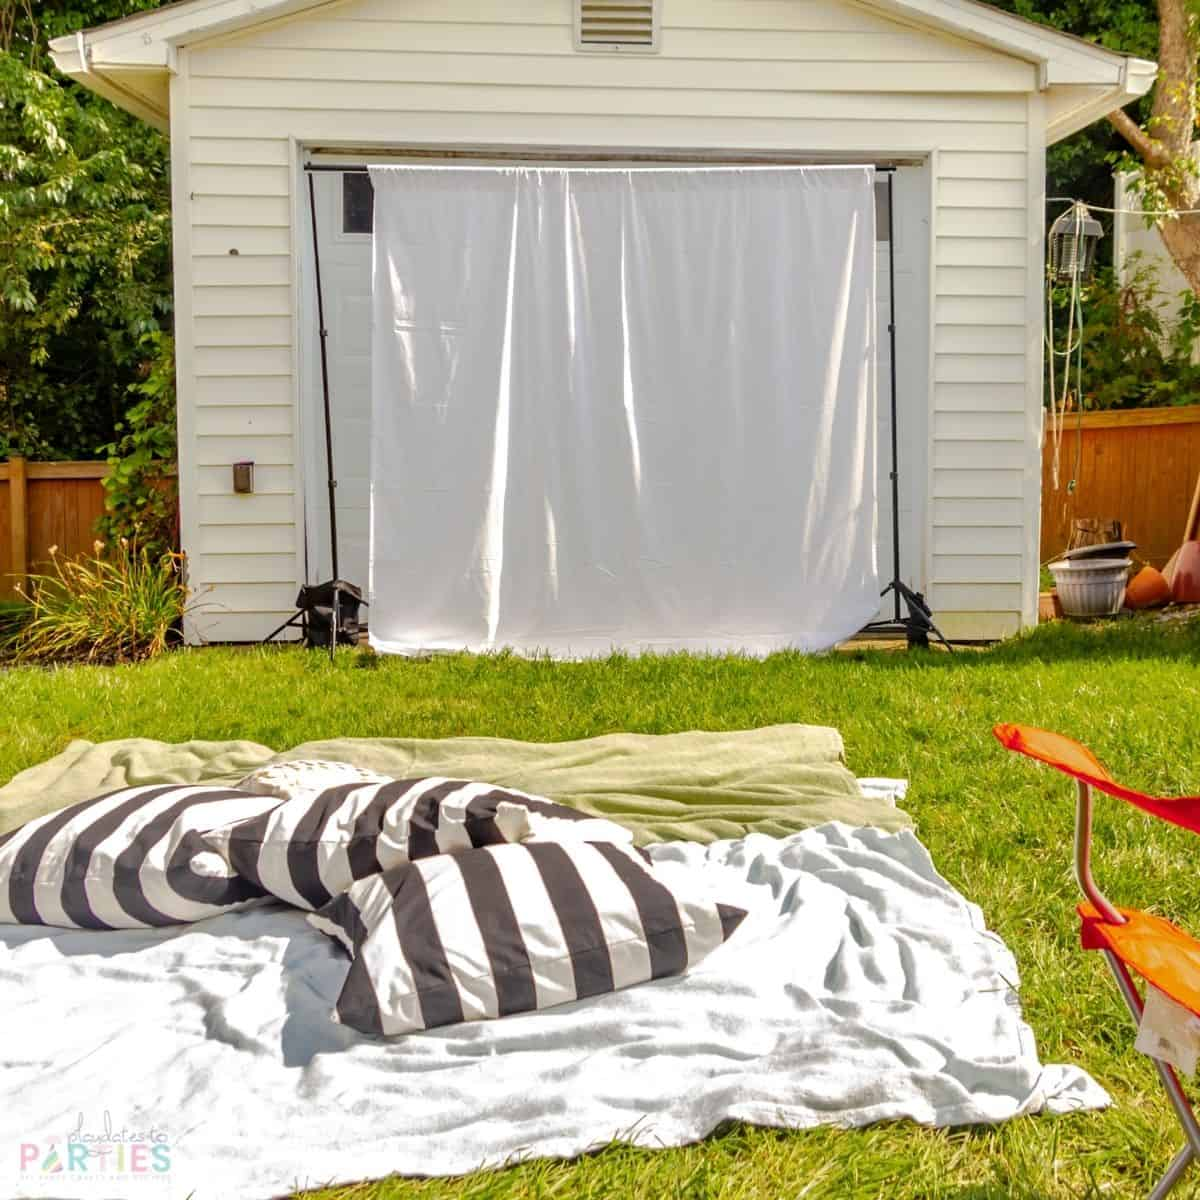 Simple outdoor movie setup with a party backdrop frame, and a white bedsheet. Throw blankets and house pillows provide a place for kids to hang out on the grass.